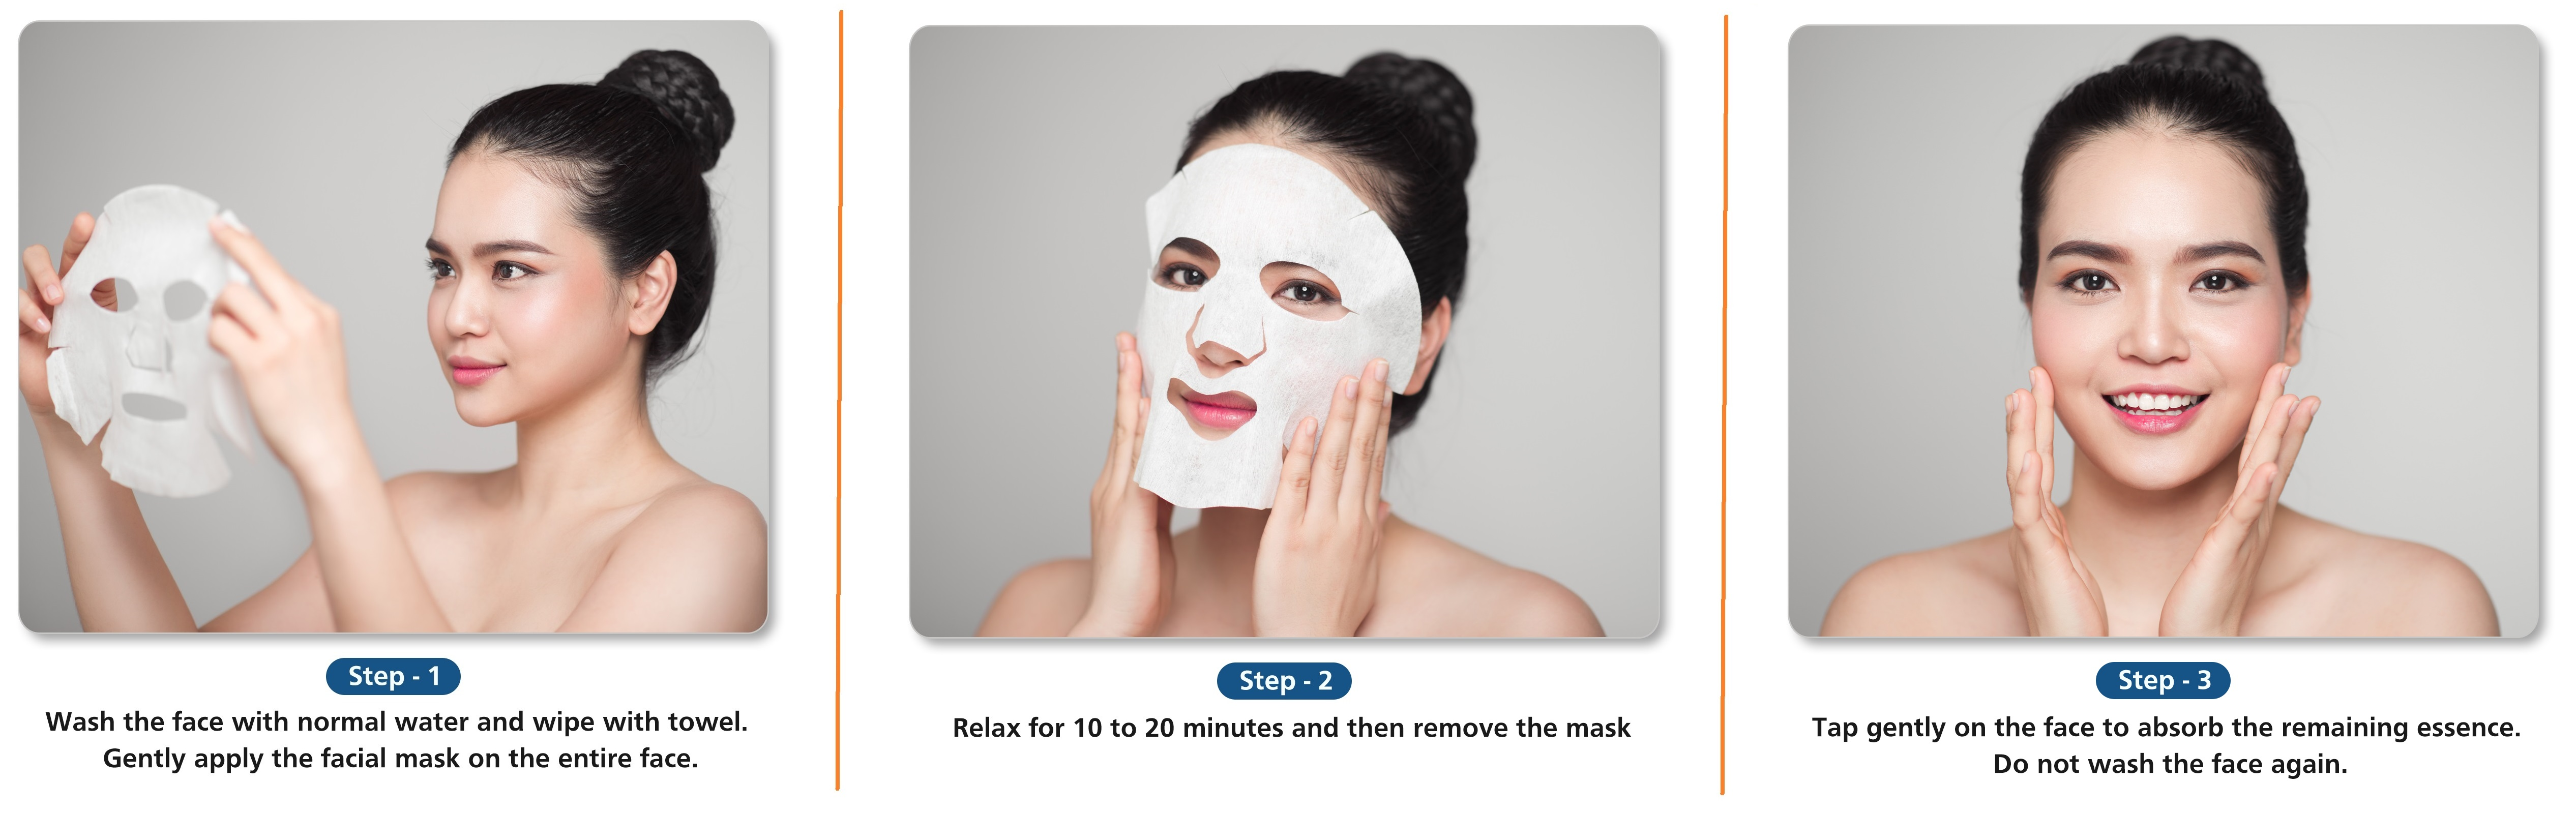 How To Use A Face Mask Properly